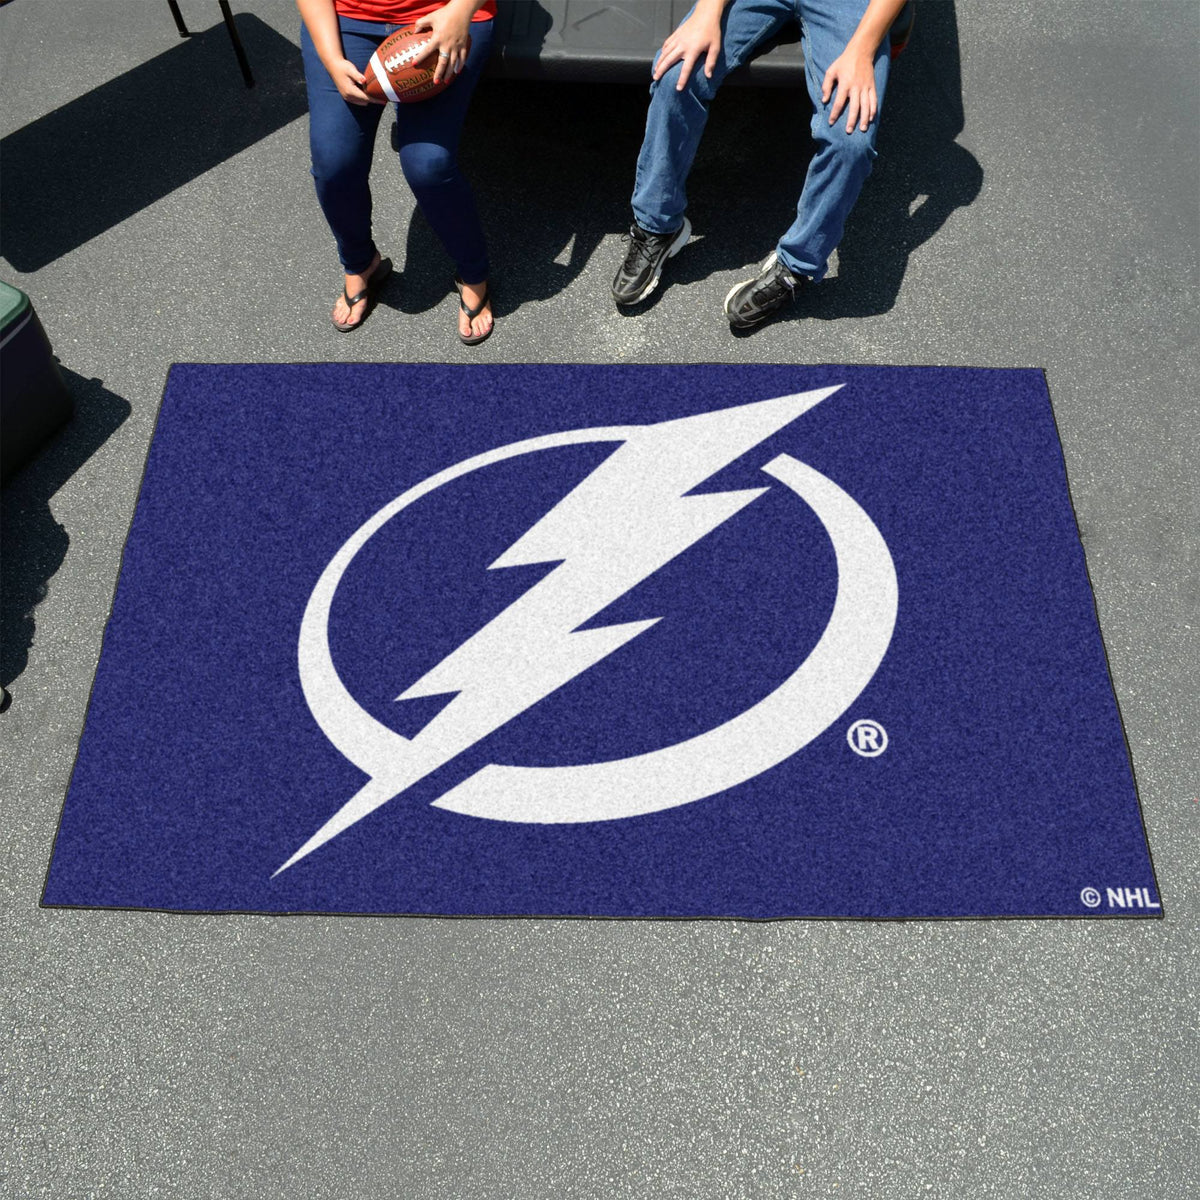 NHL - Ulti-Mat NHL Mats, Rectangular Mats, Ulti-Mat, NHL, Home Fan Mats Tampa Bay Lightning